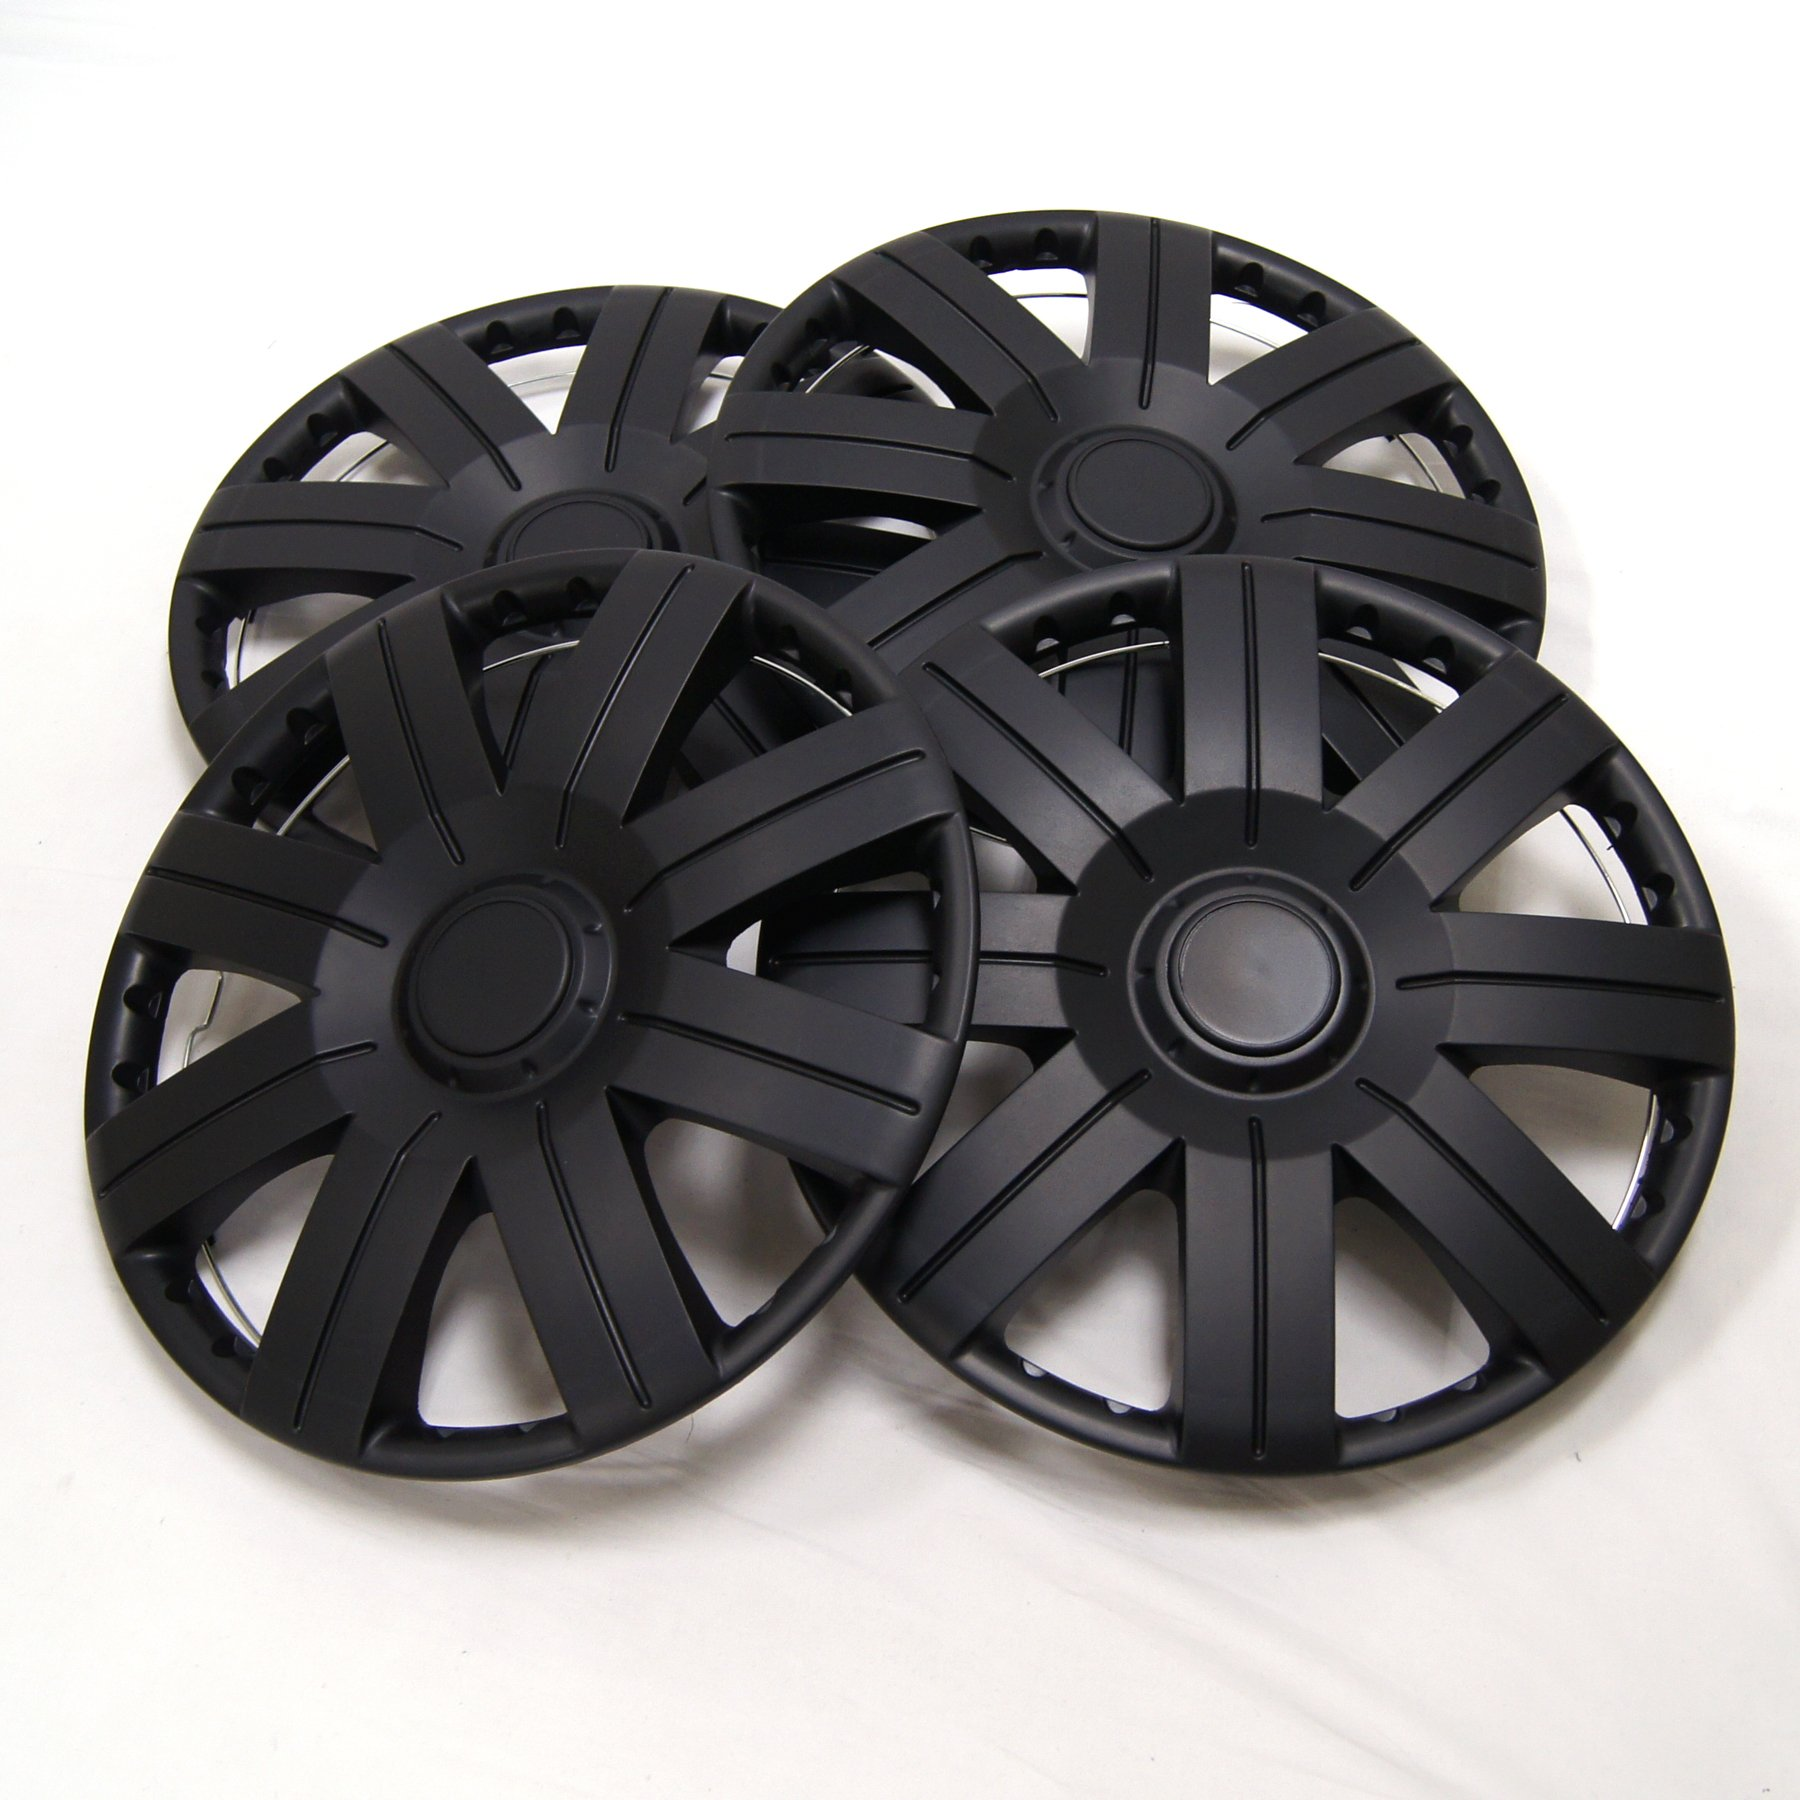 TuningPros WSC-613B15 Hubcaps Wheel Skin Cover 15-Inches Matte Black Set of 4 by TuningPros (Image #2)